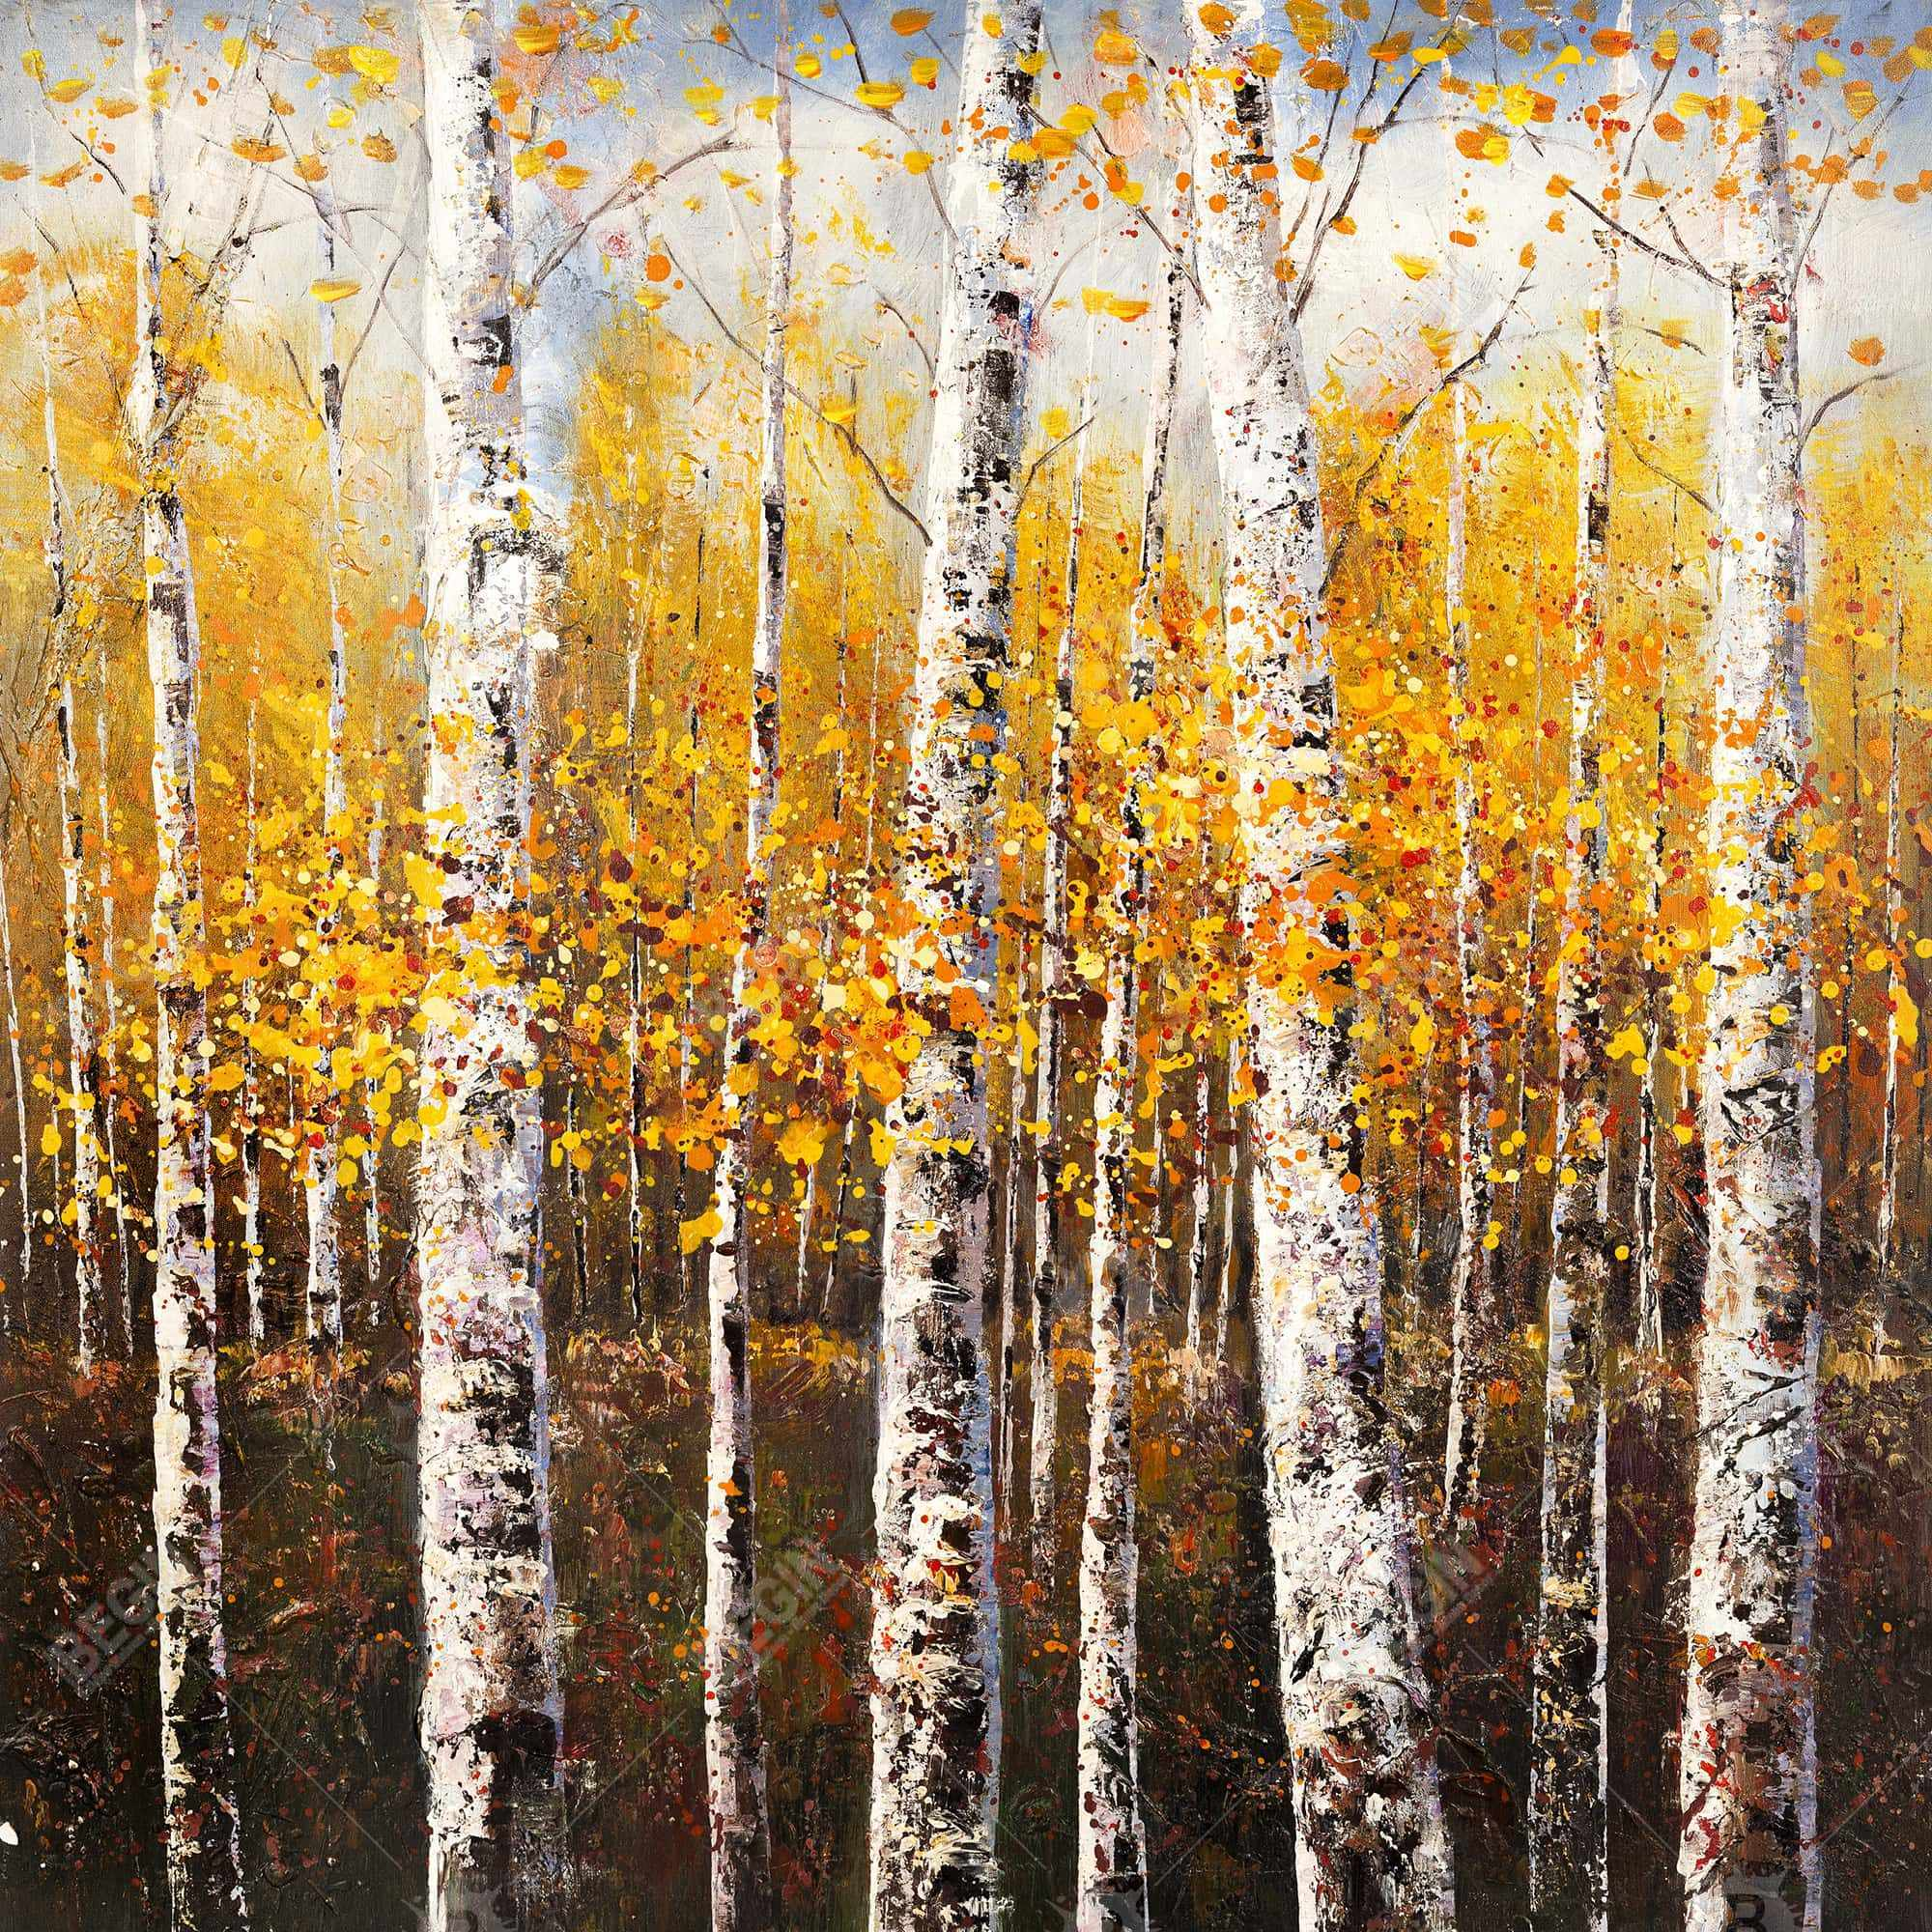 Birches by sunny day